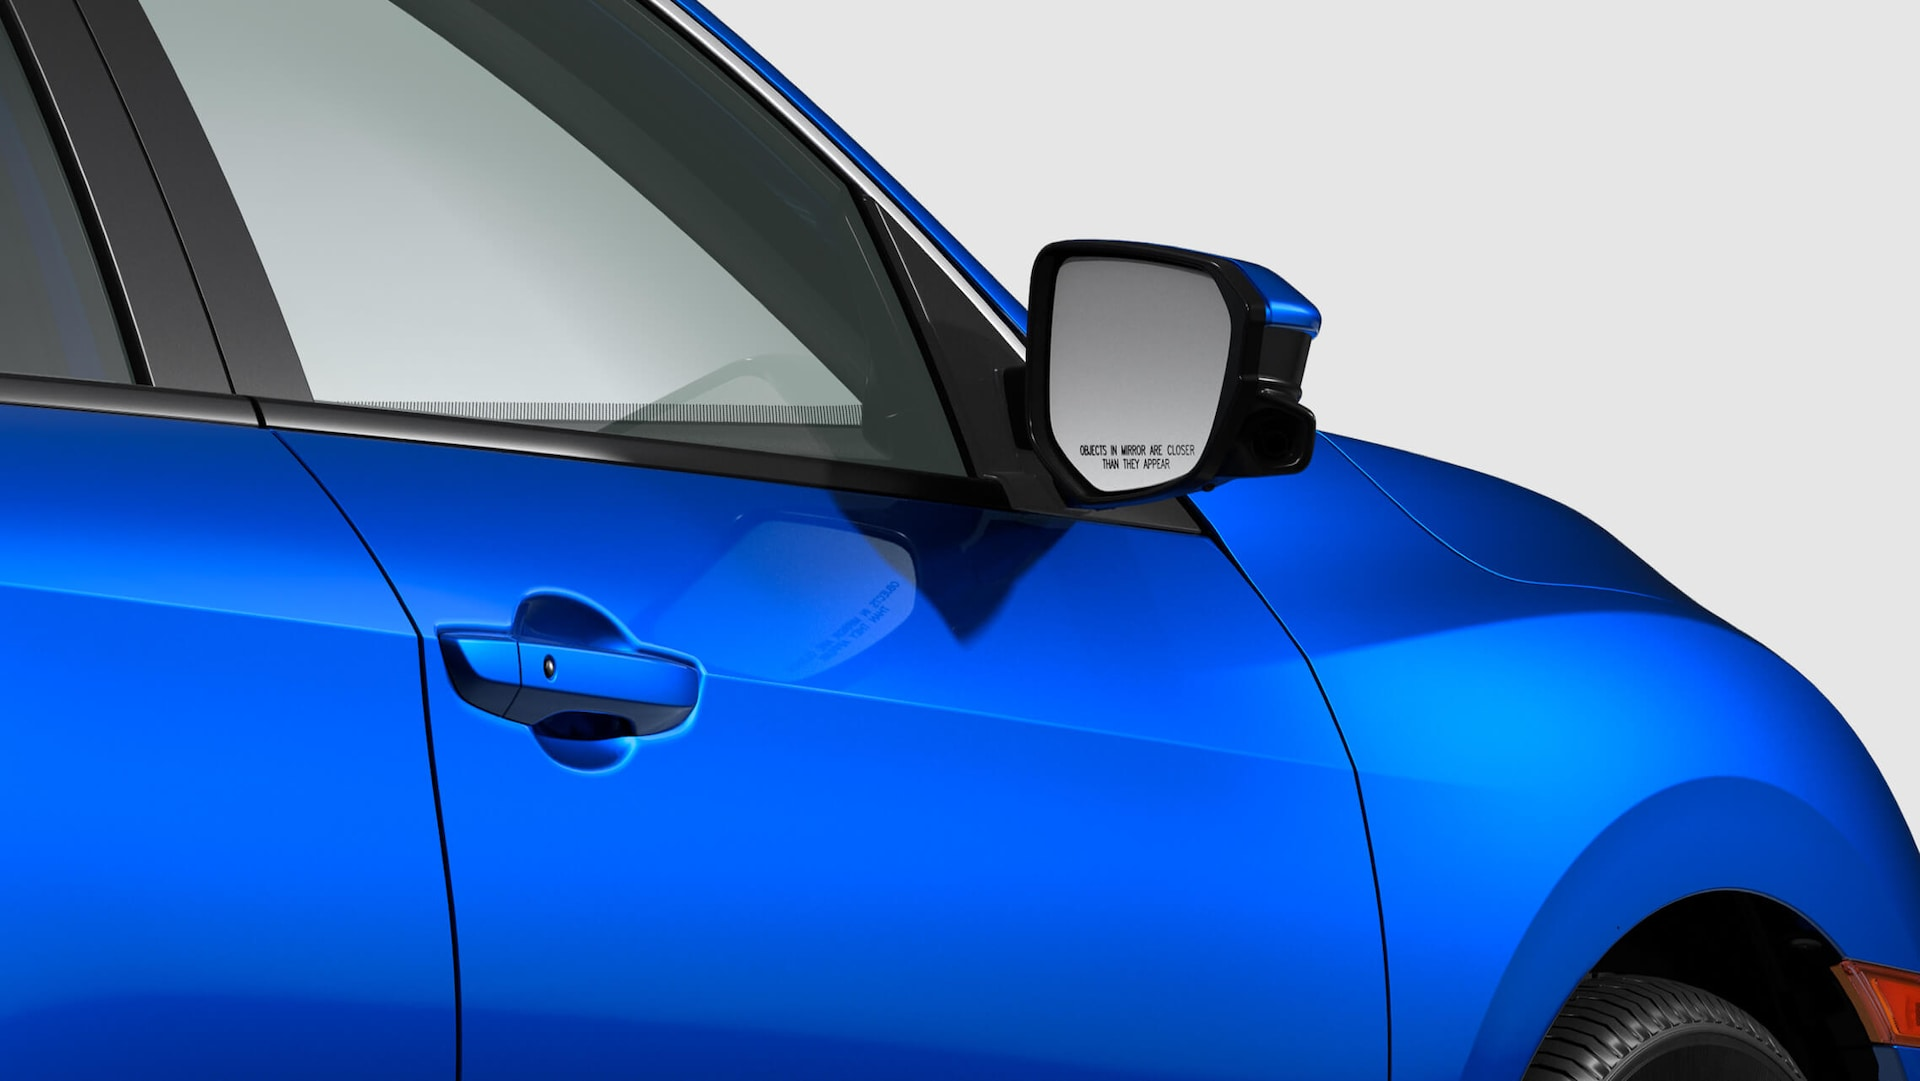 Honda LaneWatch™ camera detail on passenger's side side mirror on 2020 Honda Civic Si Sedan in Aegean Blue Metallic.